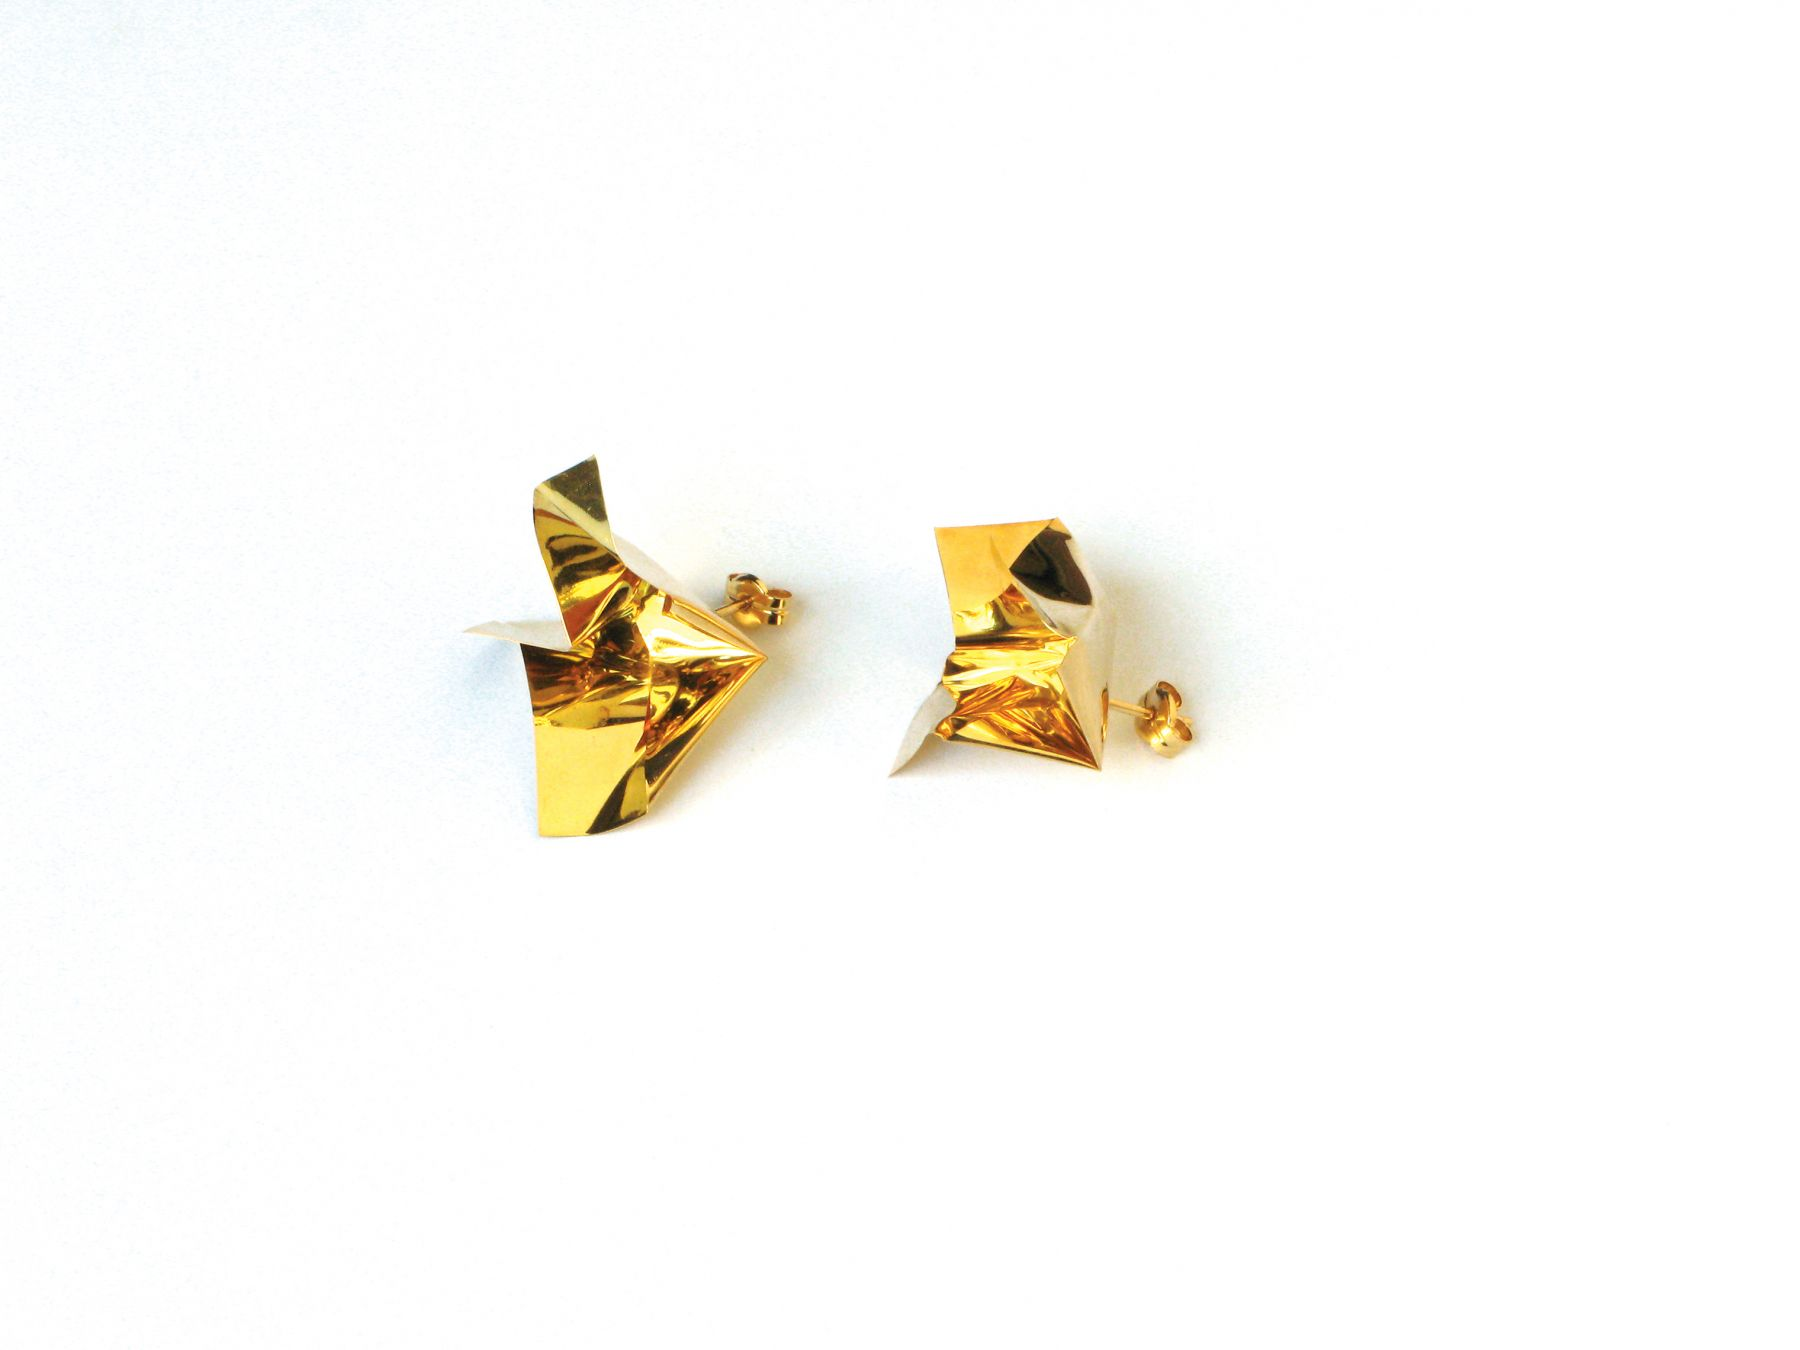 Marc Monzo Fire Earrings